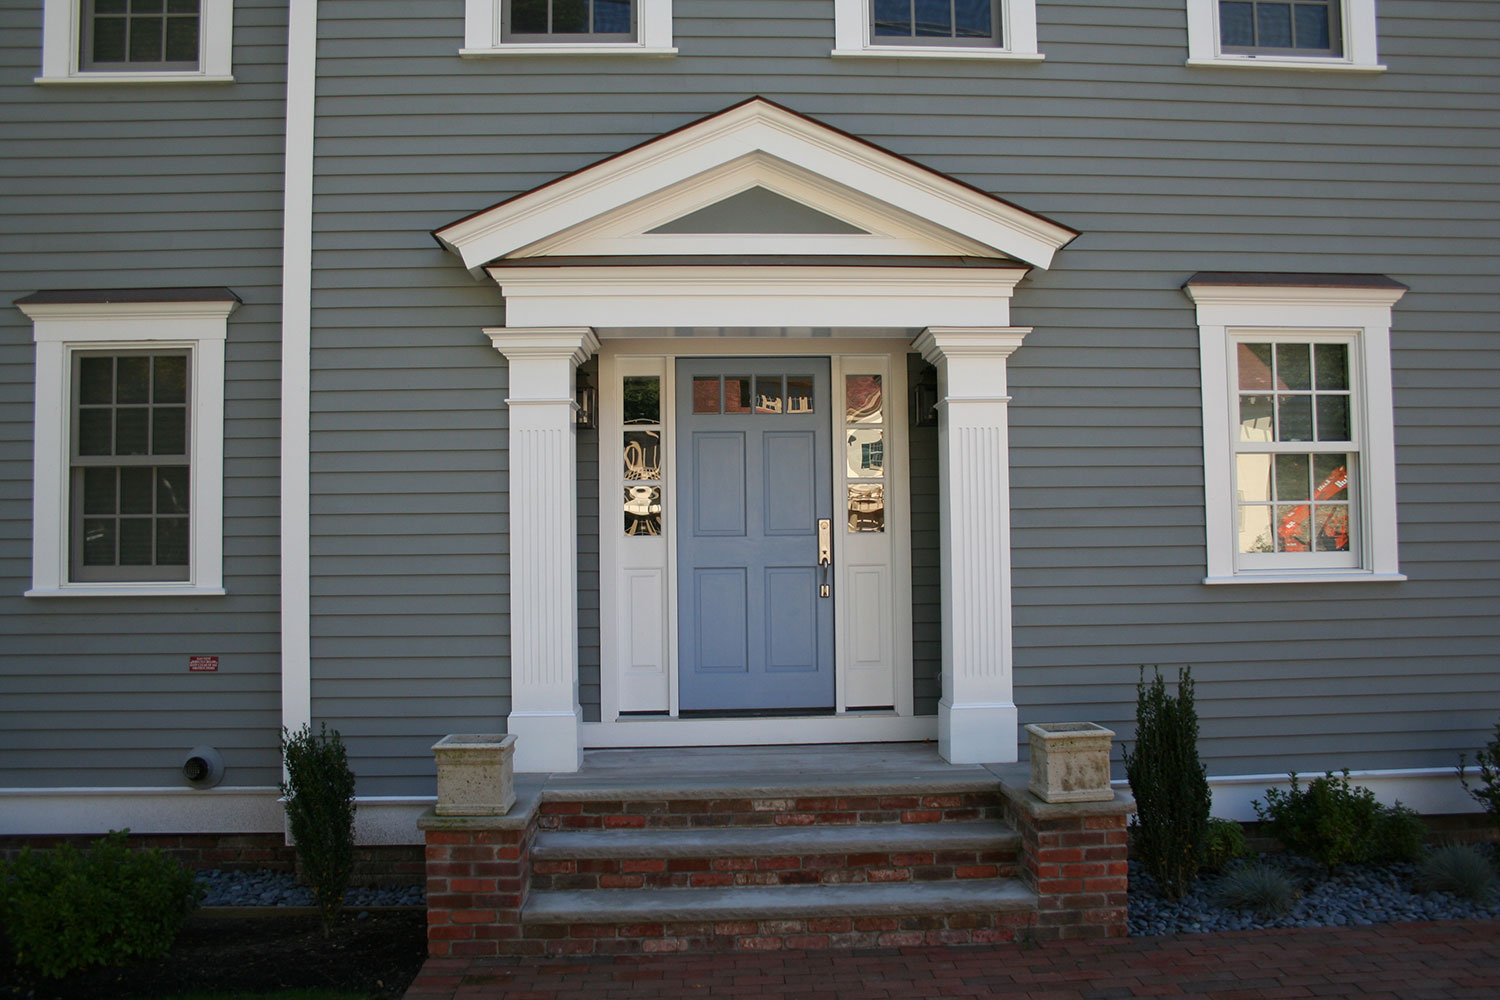 34_MORLEY-FRONT-DOOR-#